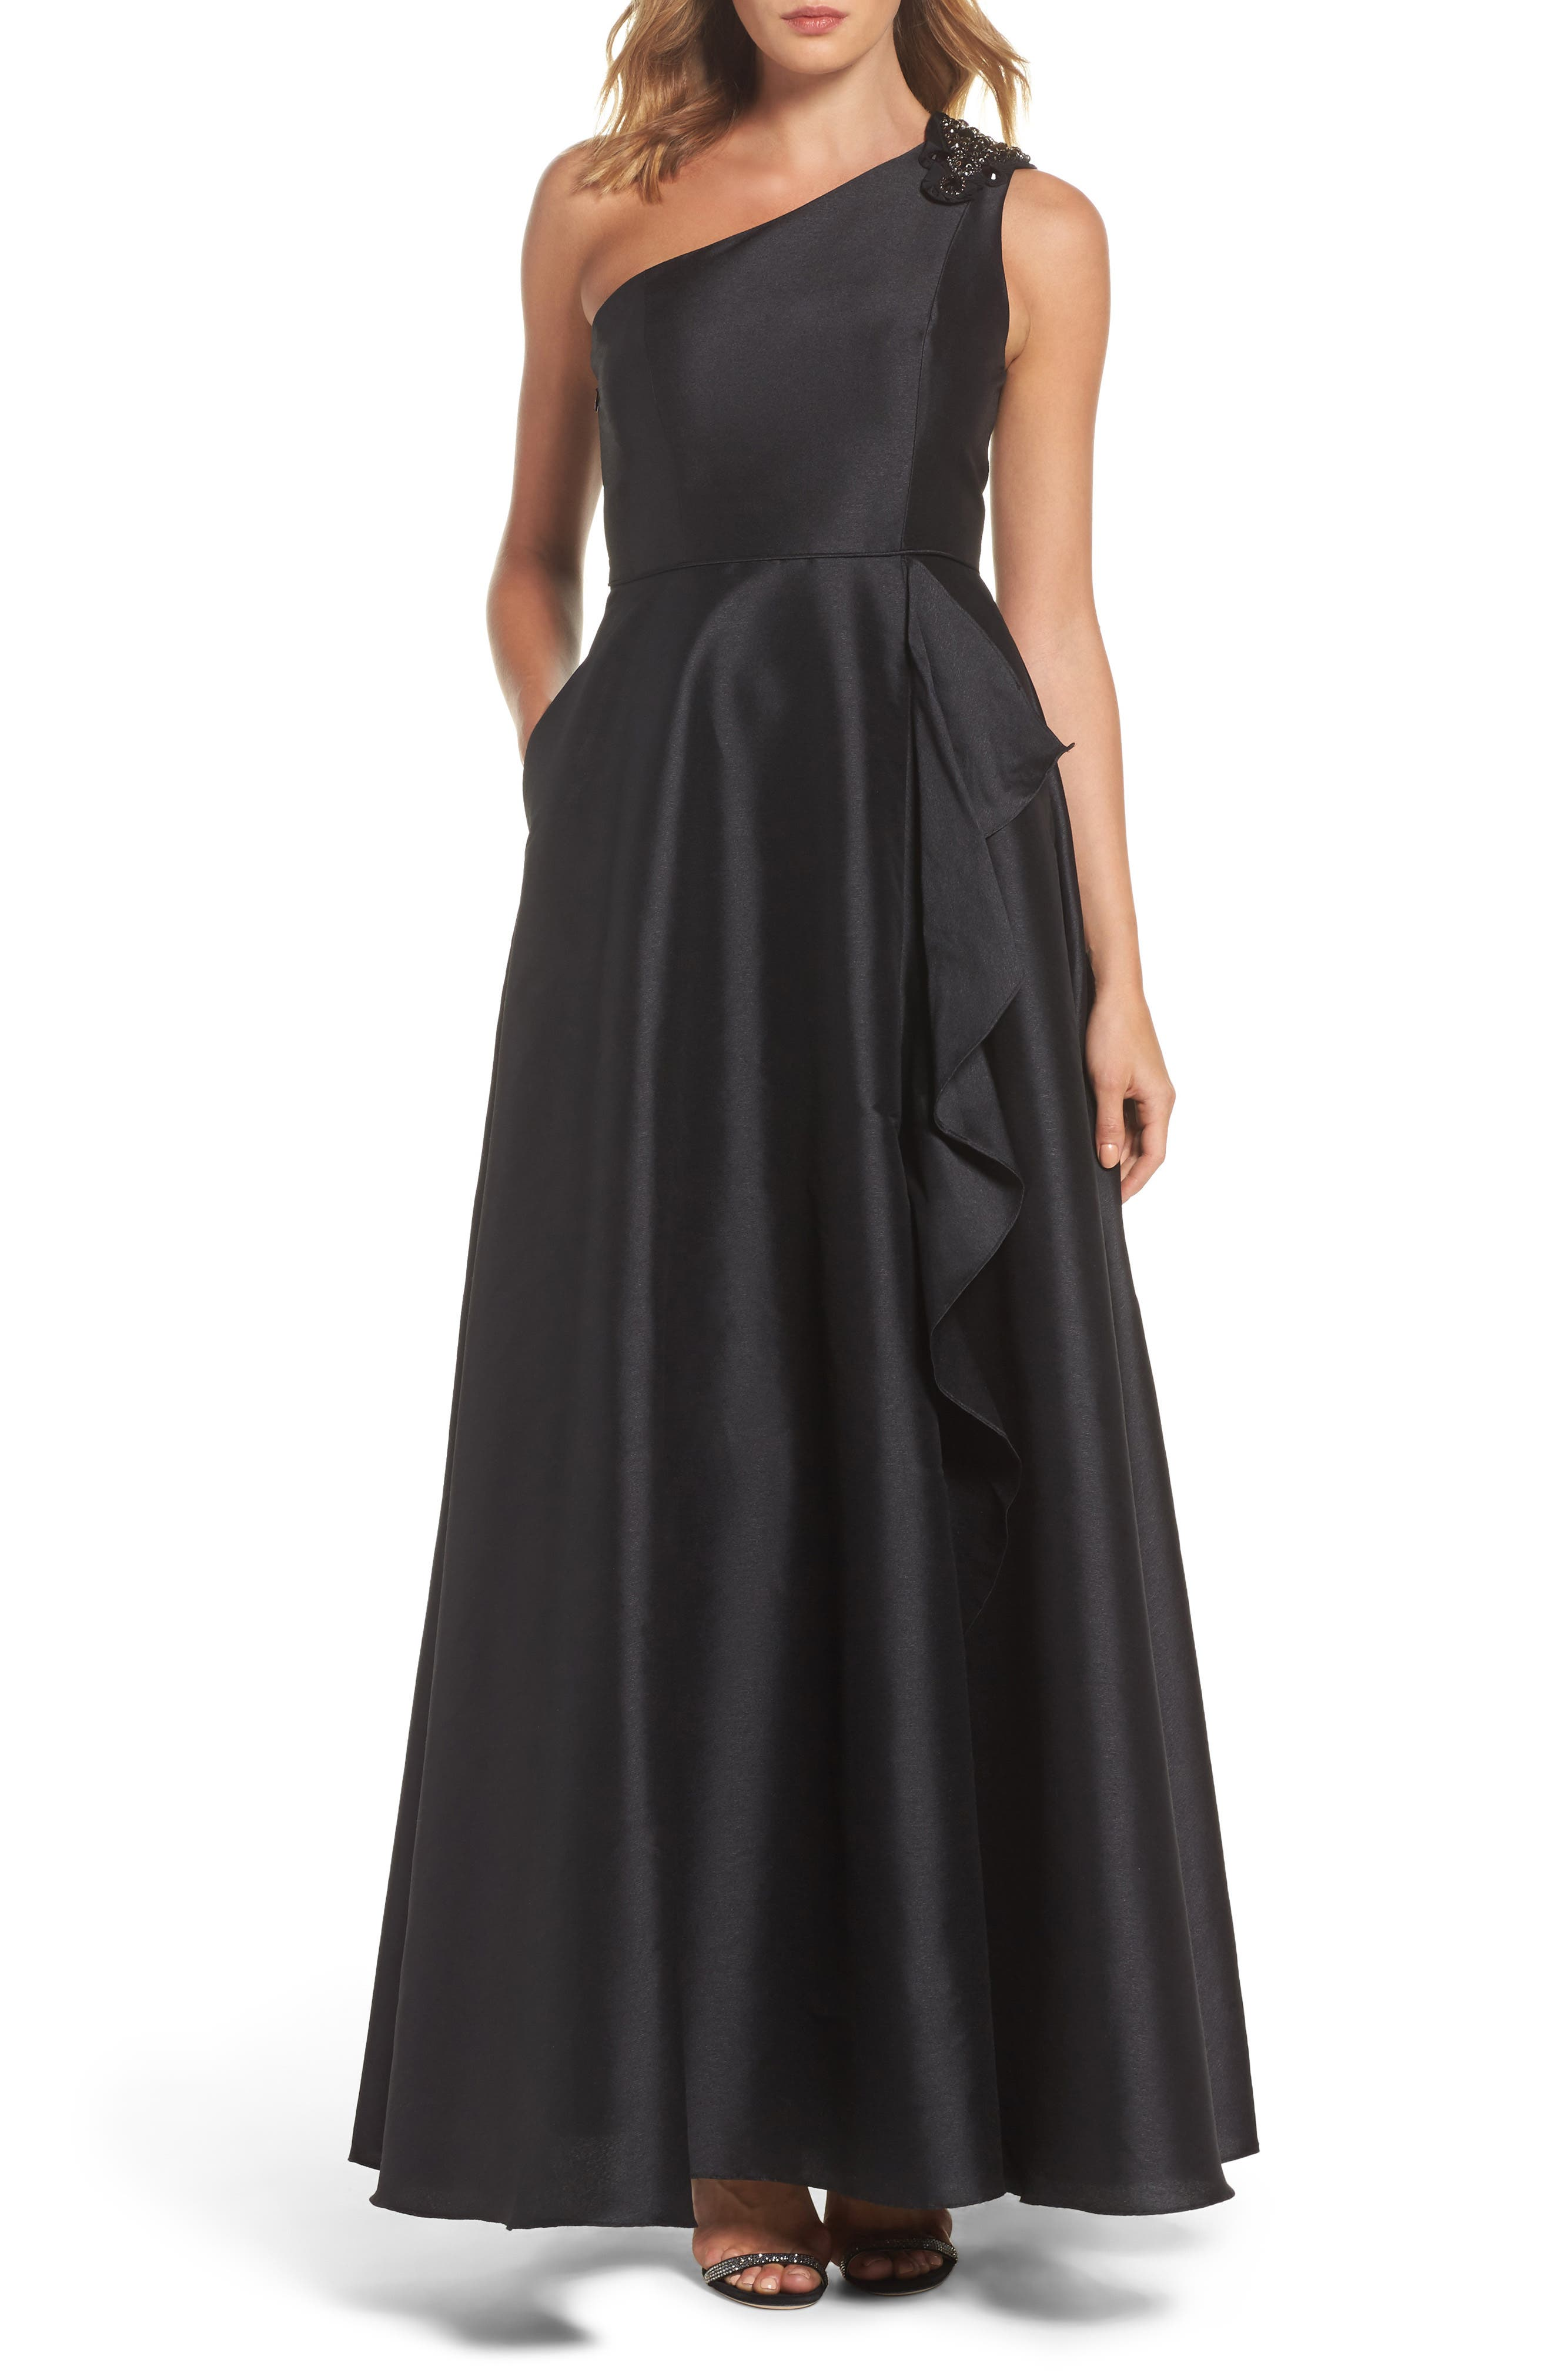 ADRIANNA PAPELL Embellished One-Shoulder Drape Faille Gown